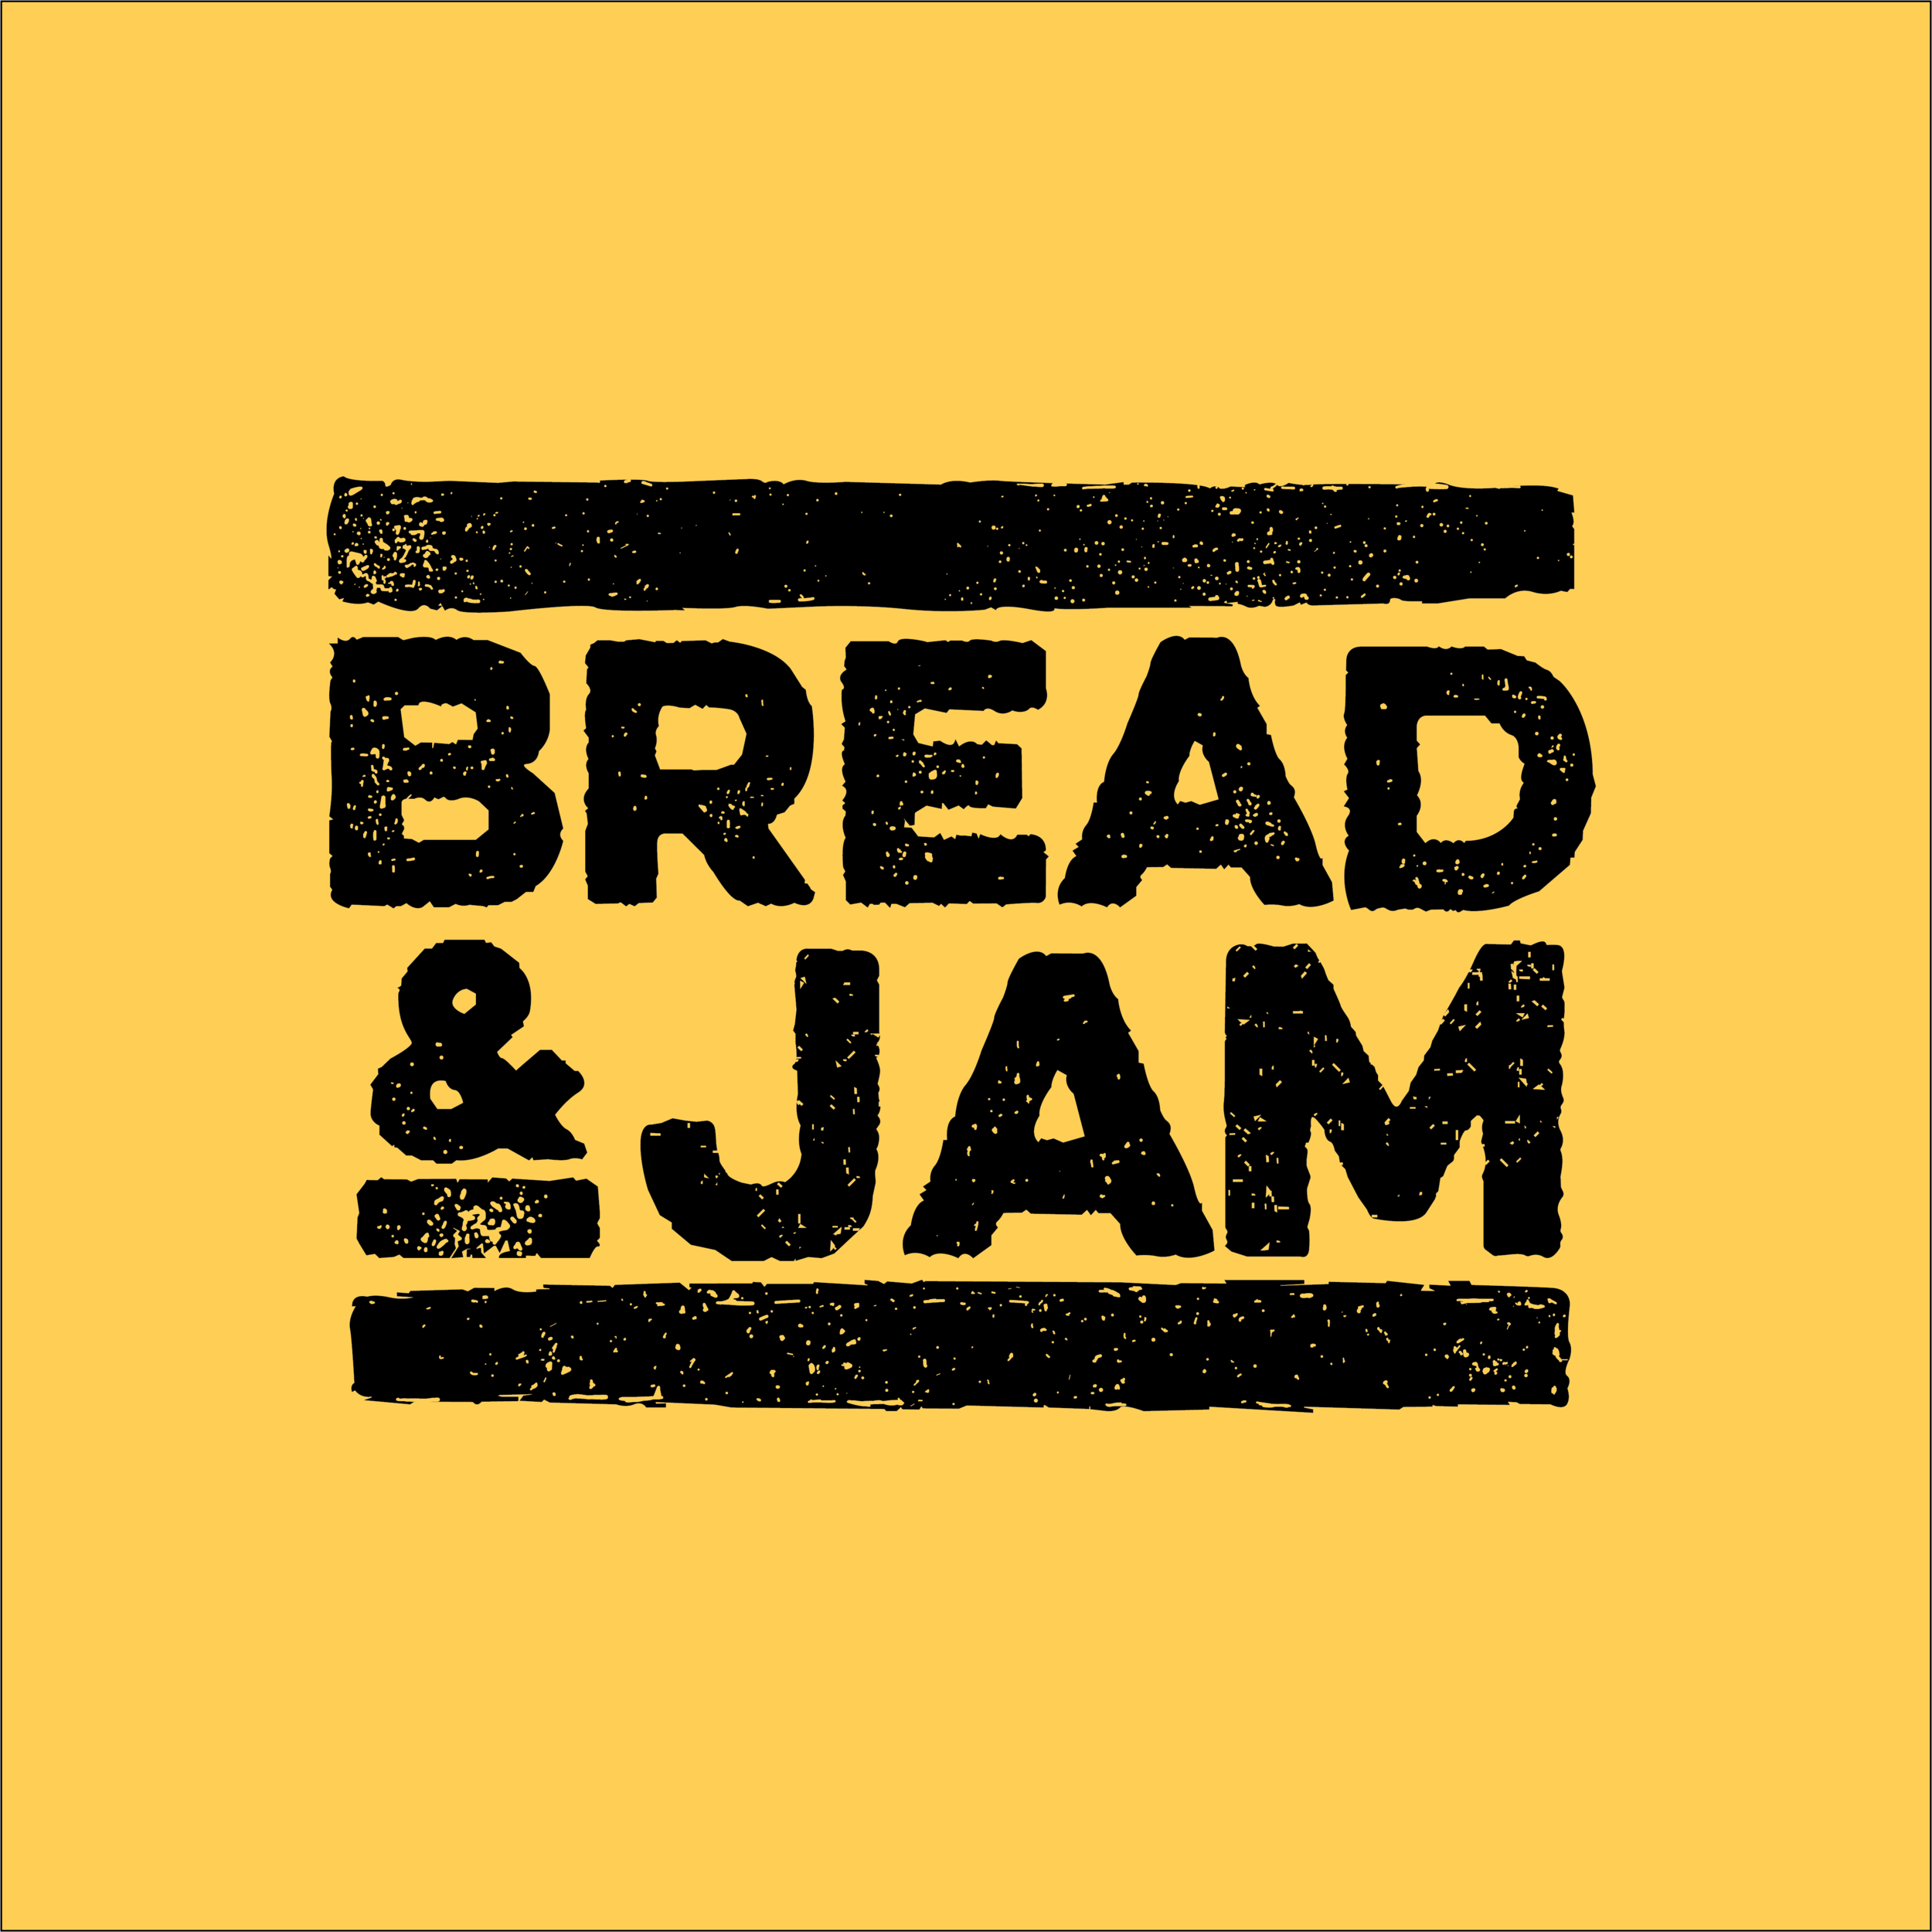 The first of our films made for Bread & Jam Festival has been released today.  See it here: https://twitter.com/breadjamfest/status/1025341319609282561